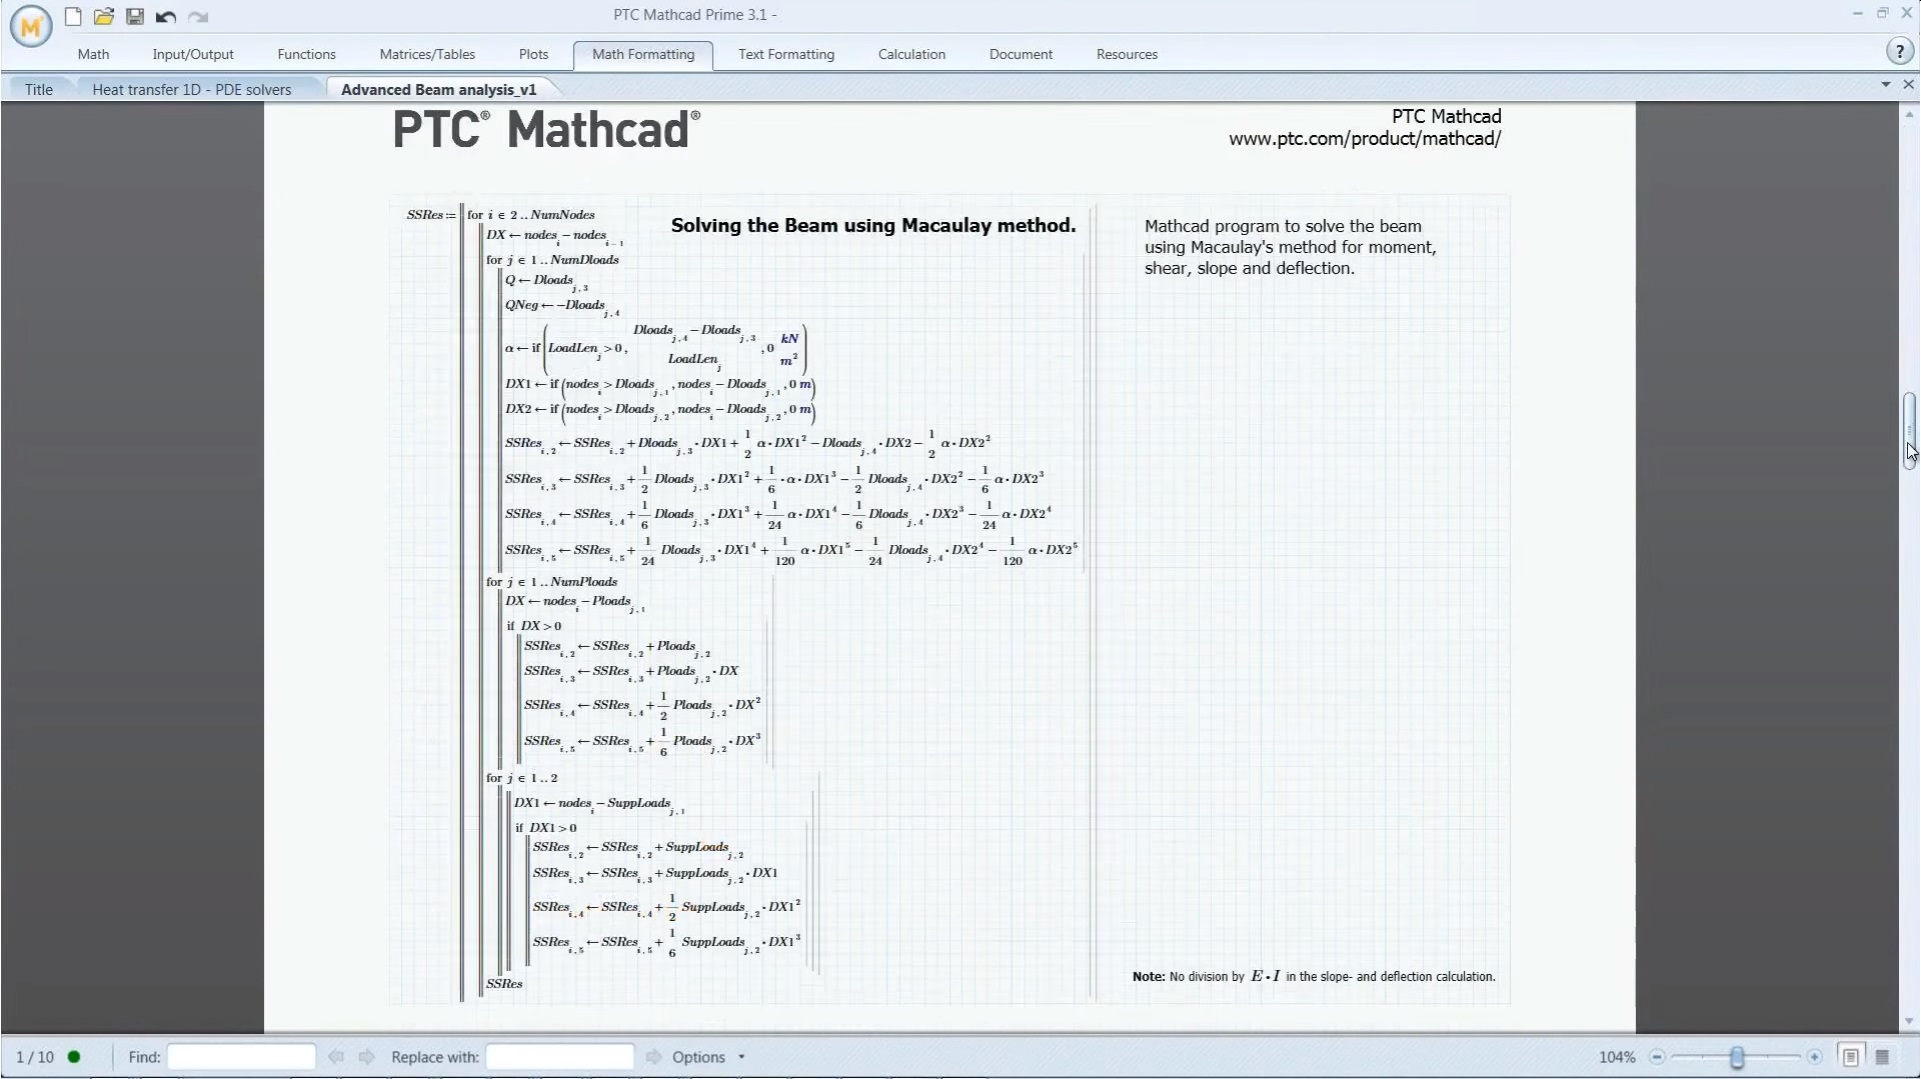 PTC Mathcad Demo - Solve the Beam